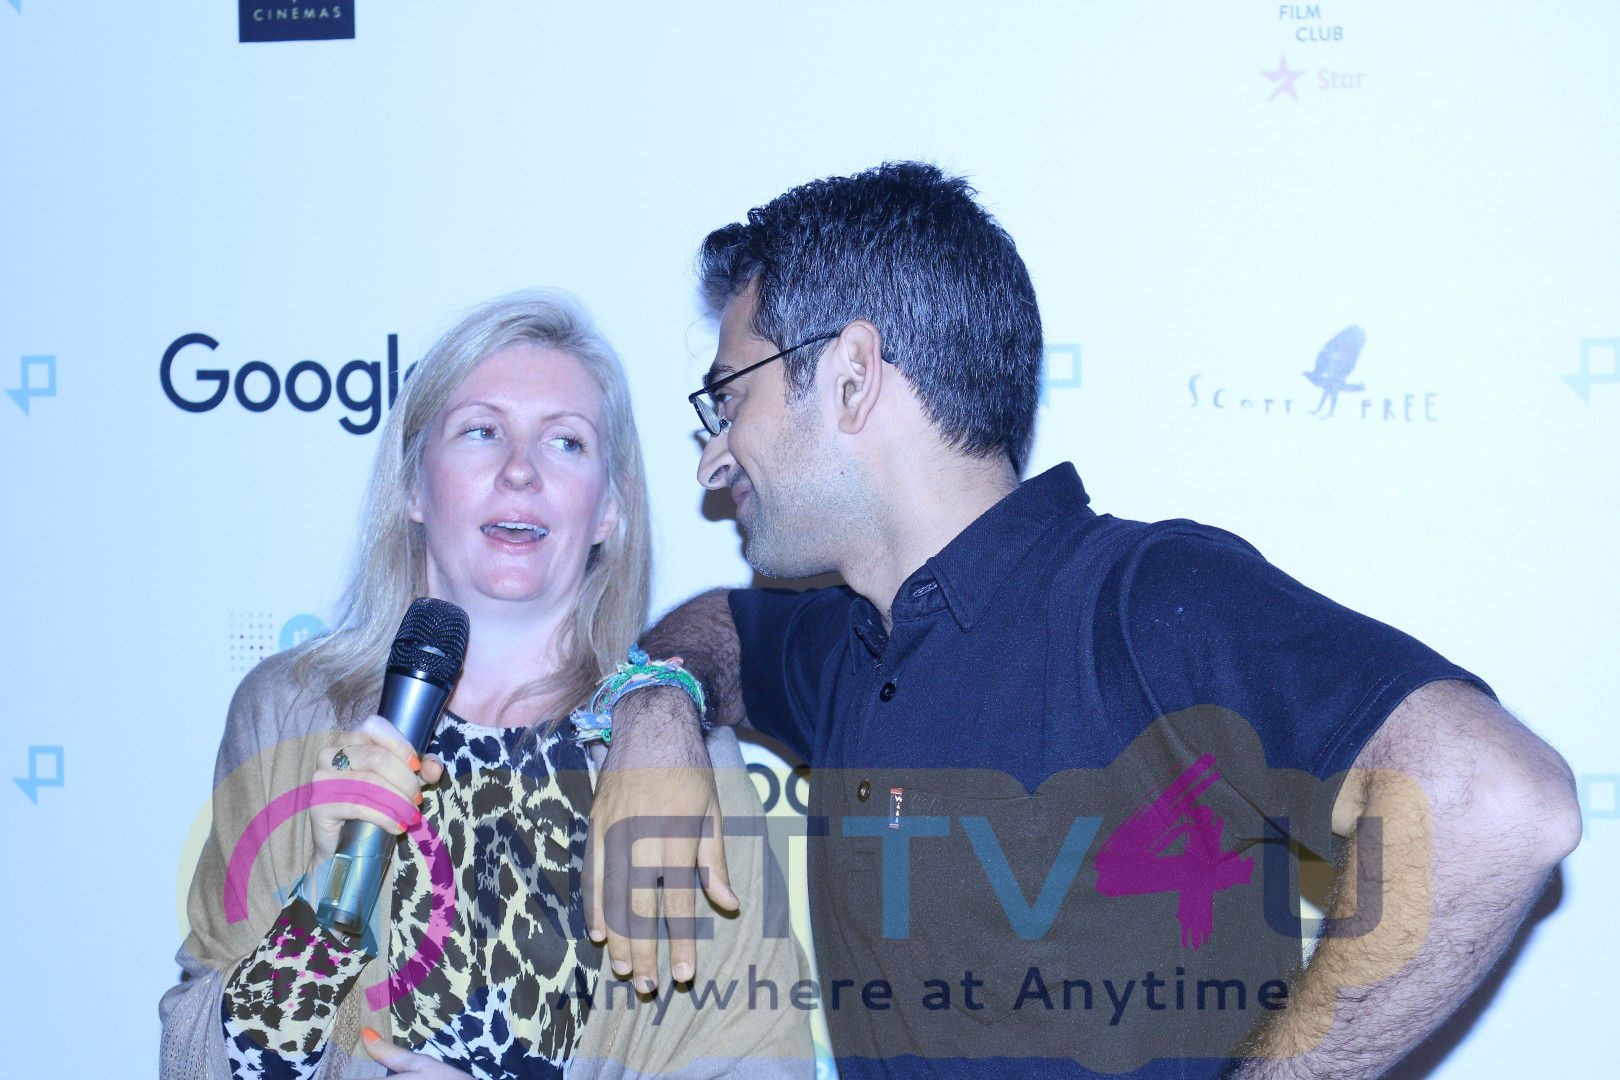 Photos Of India Premiere Of Google 1st Crowdsourced Footage Film With Anurag Kashyap